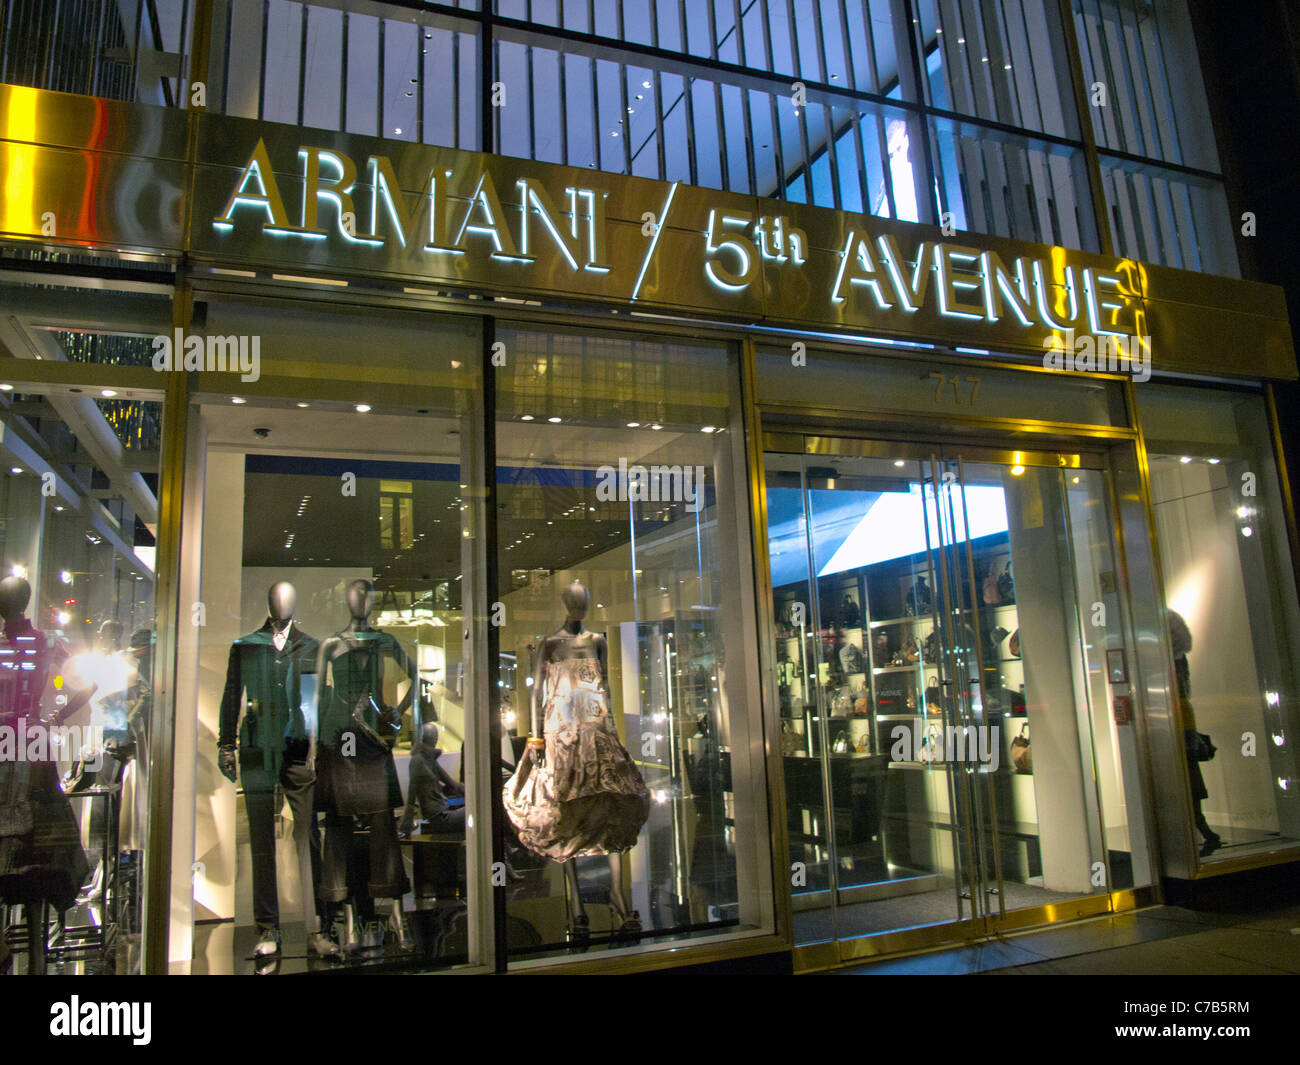 Armani store on 5th avenue in new york city stock photo for Armani store nyc